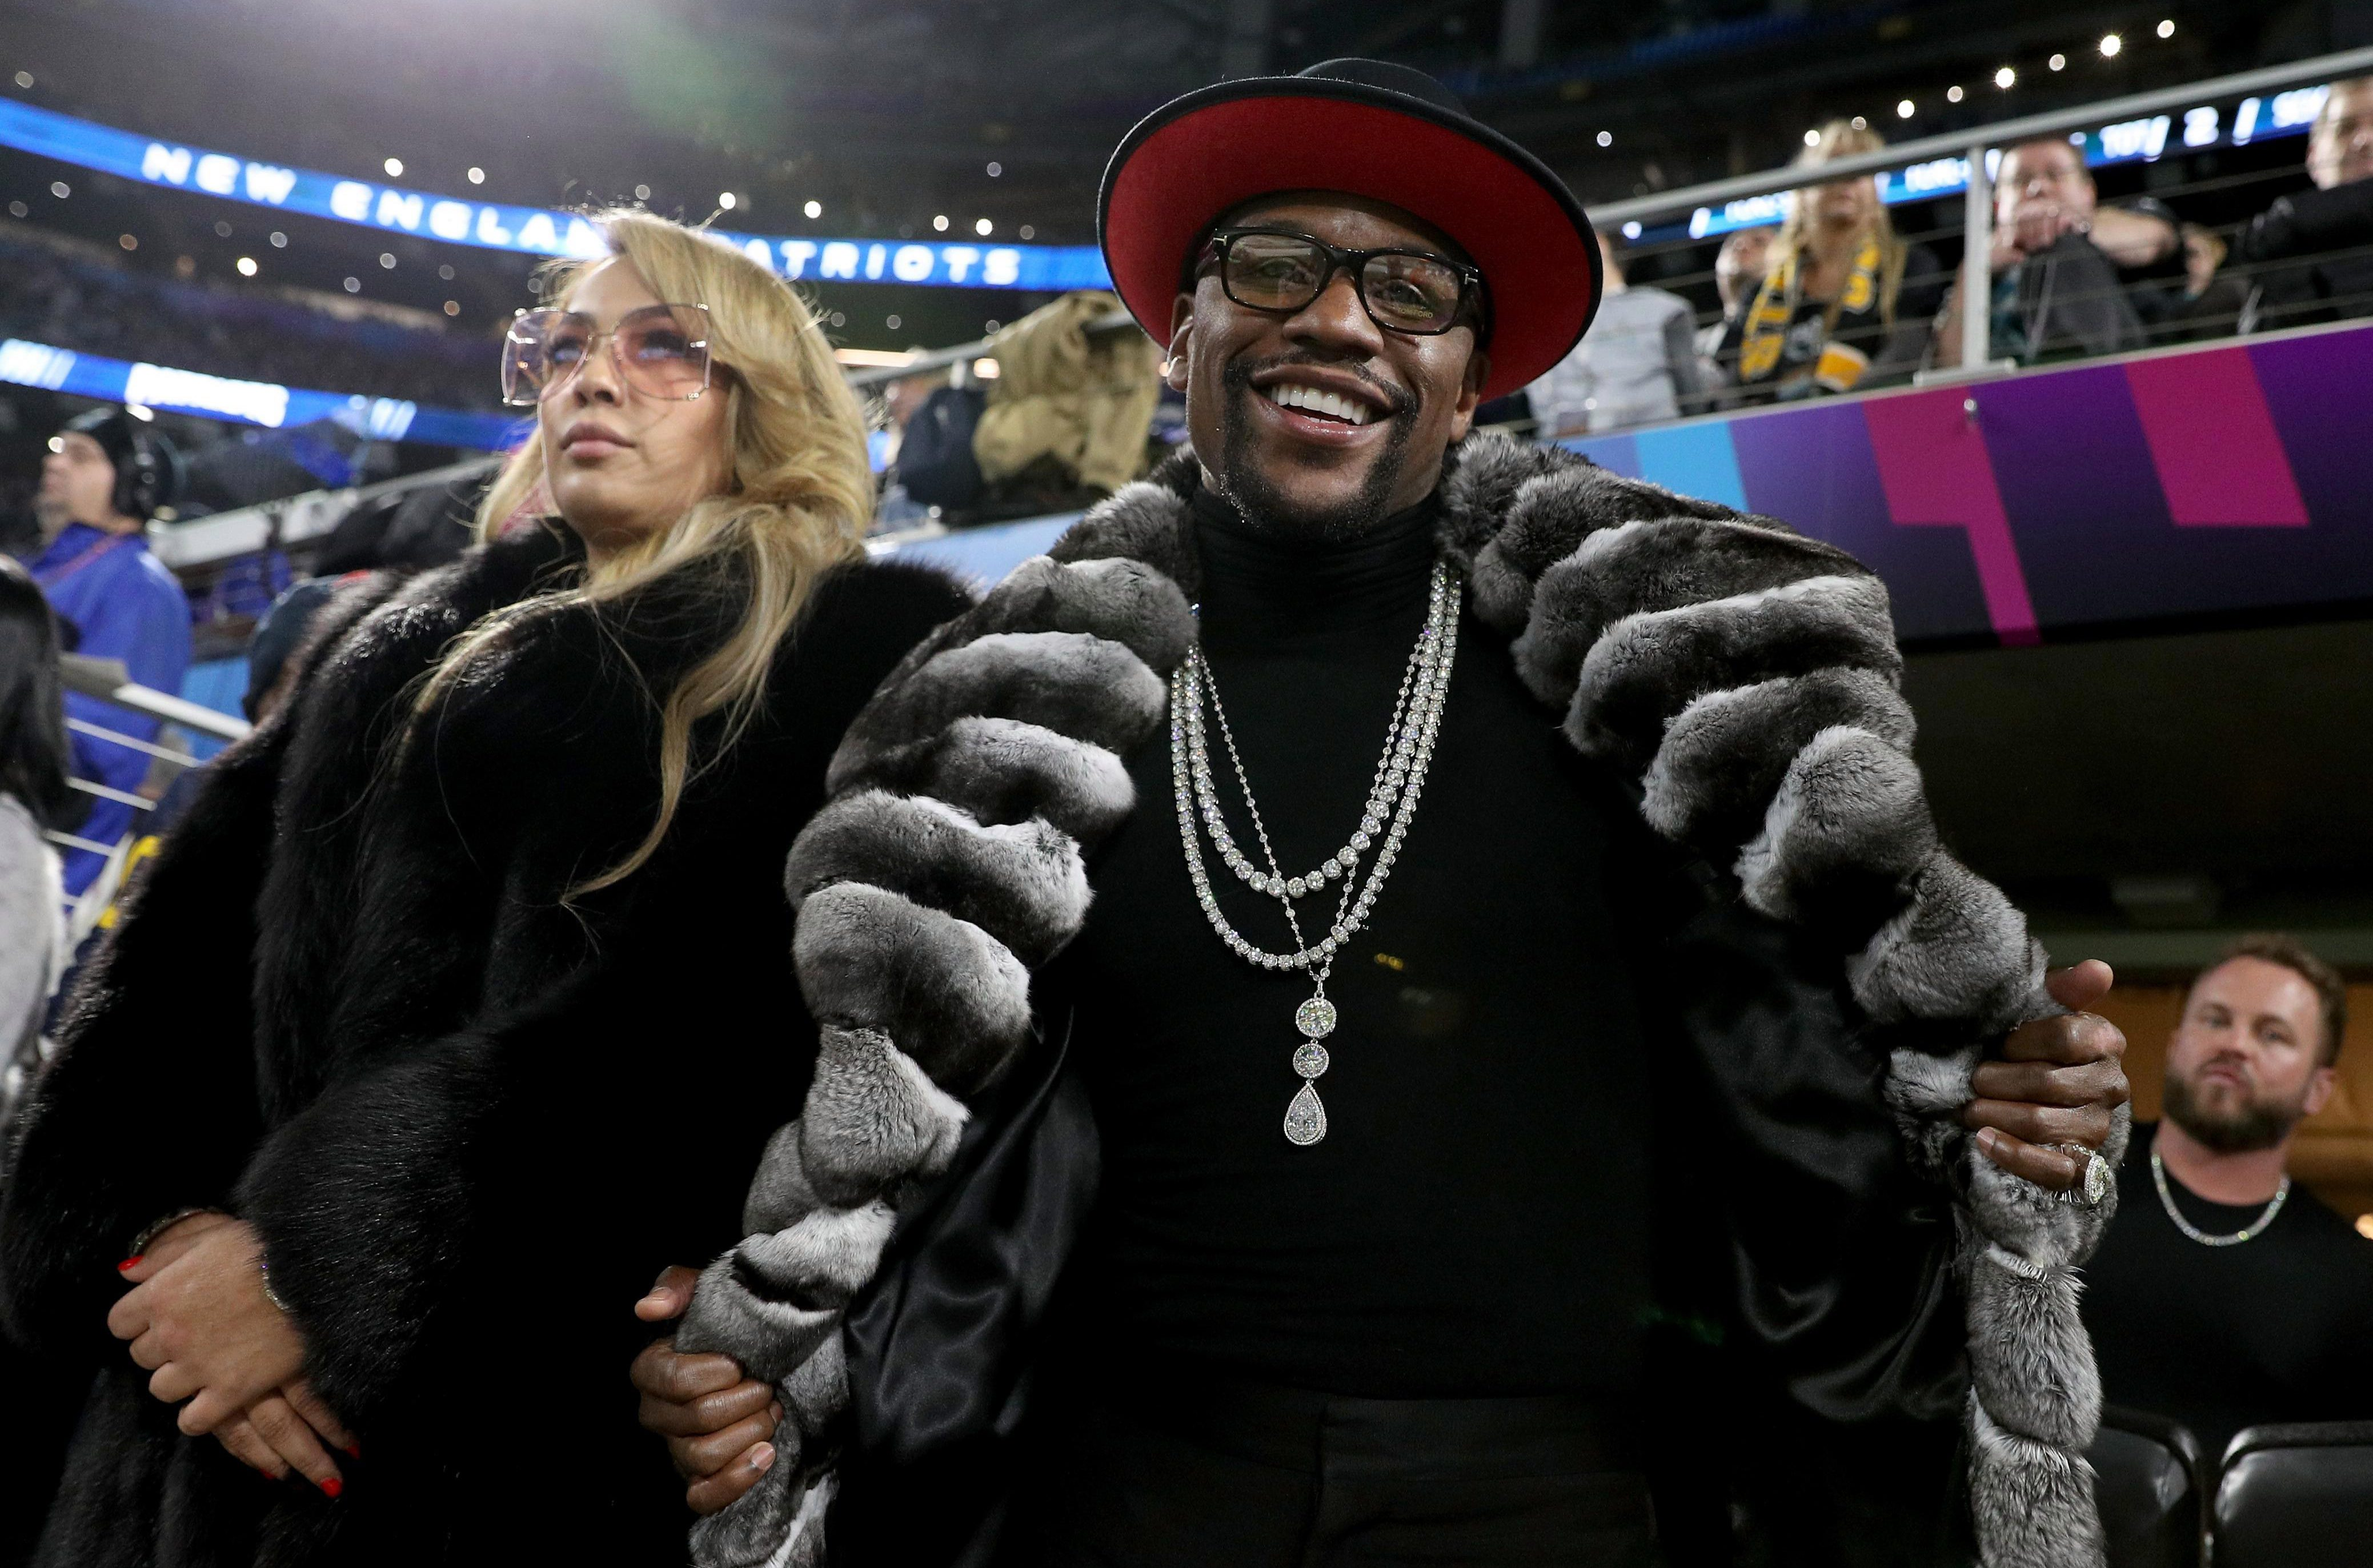 Floyd Mayweather rocked up at the Super Bowl in Minneapolis wearing a fur coat